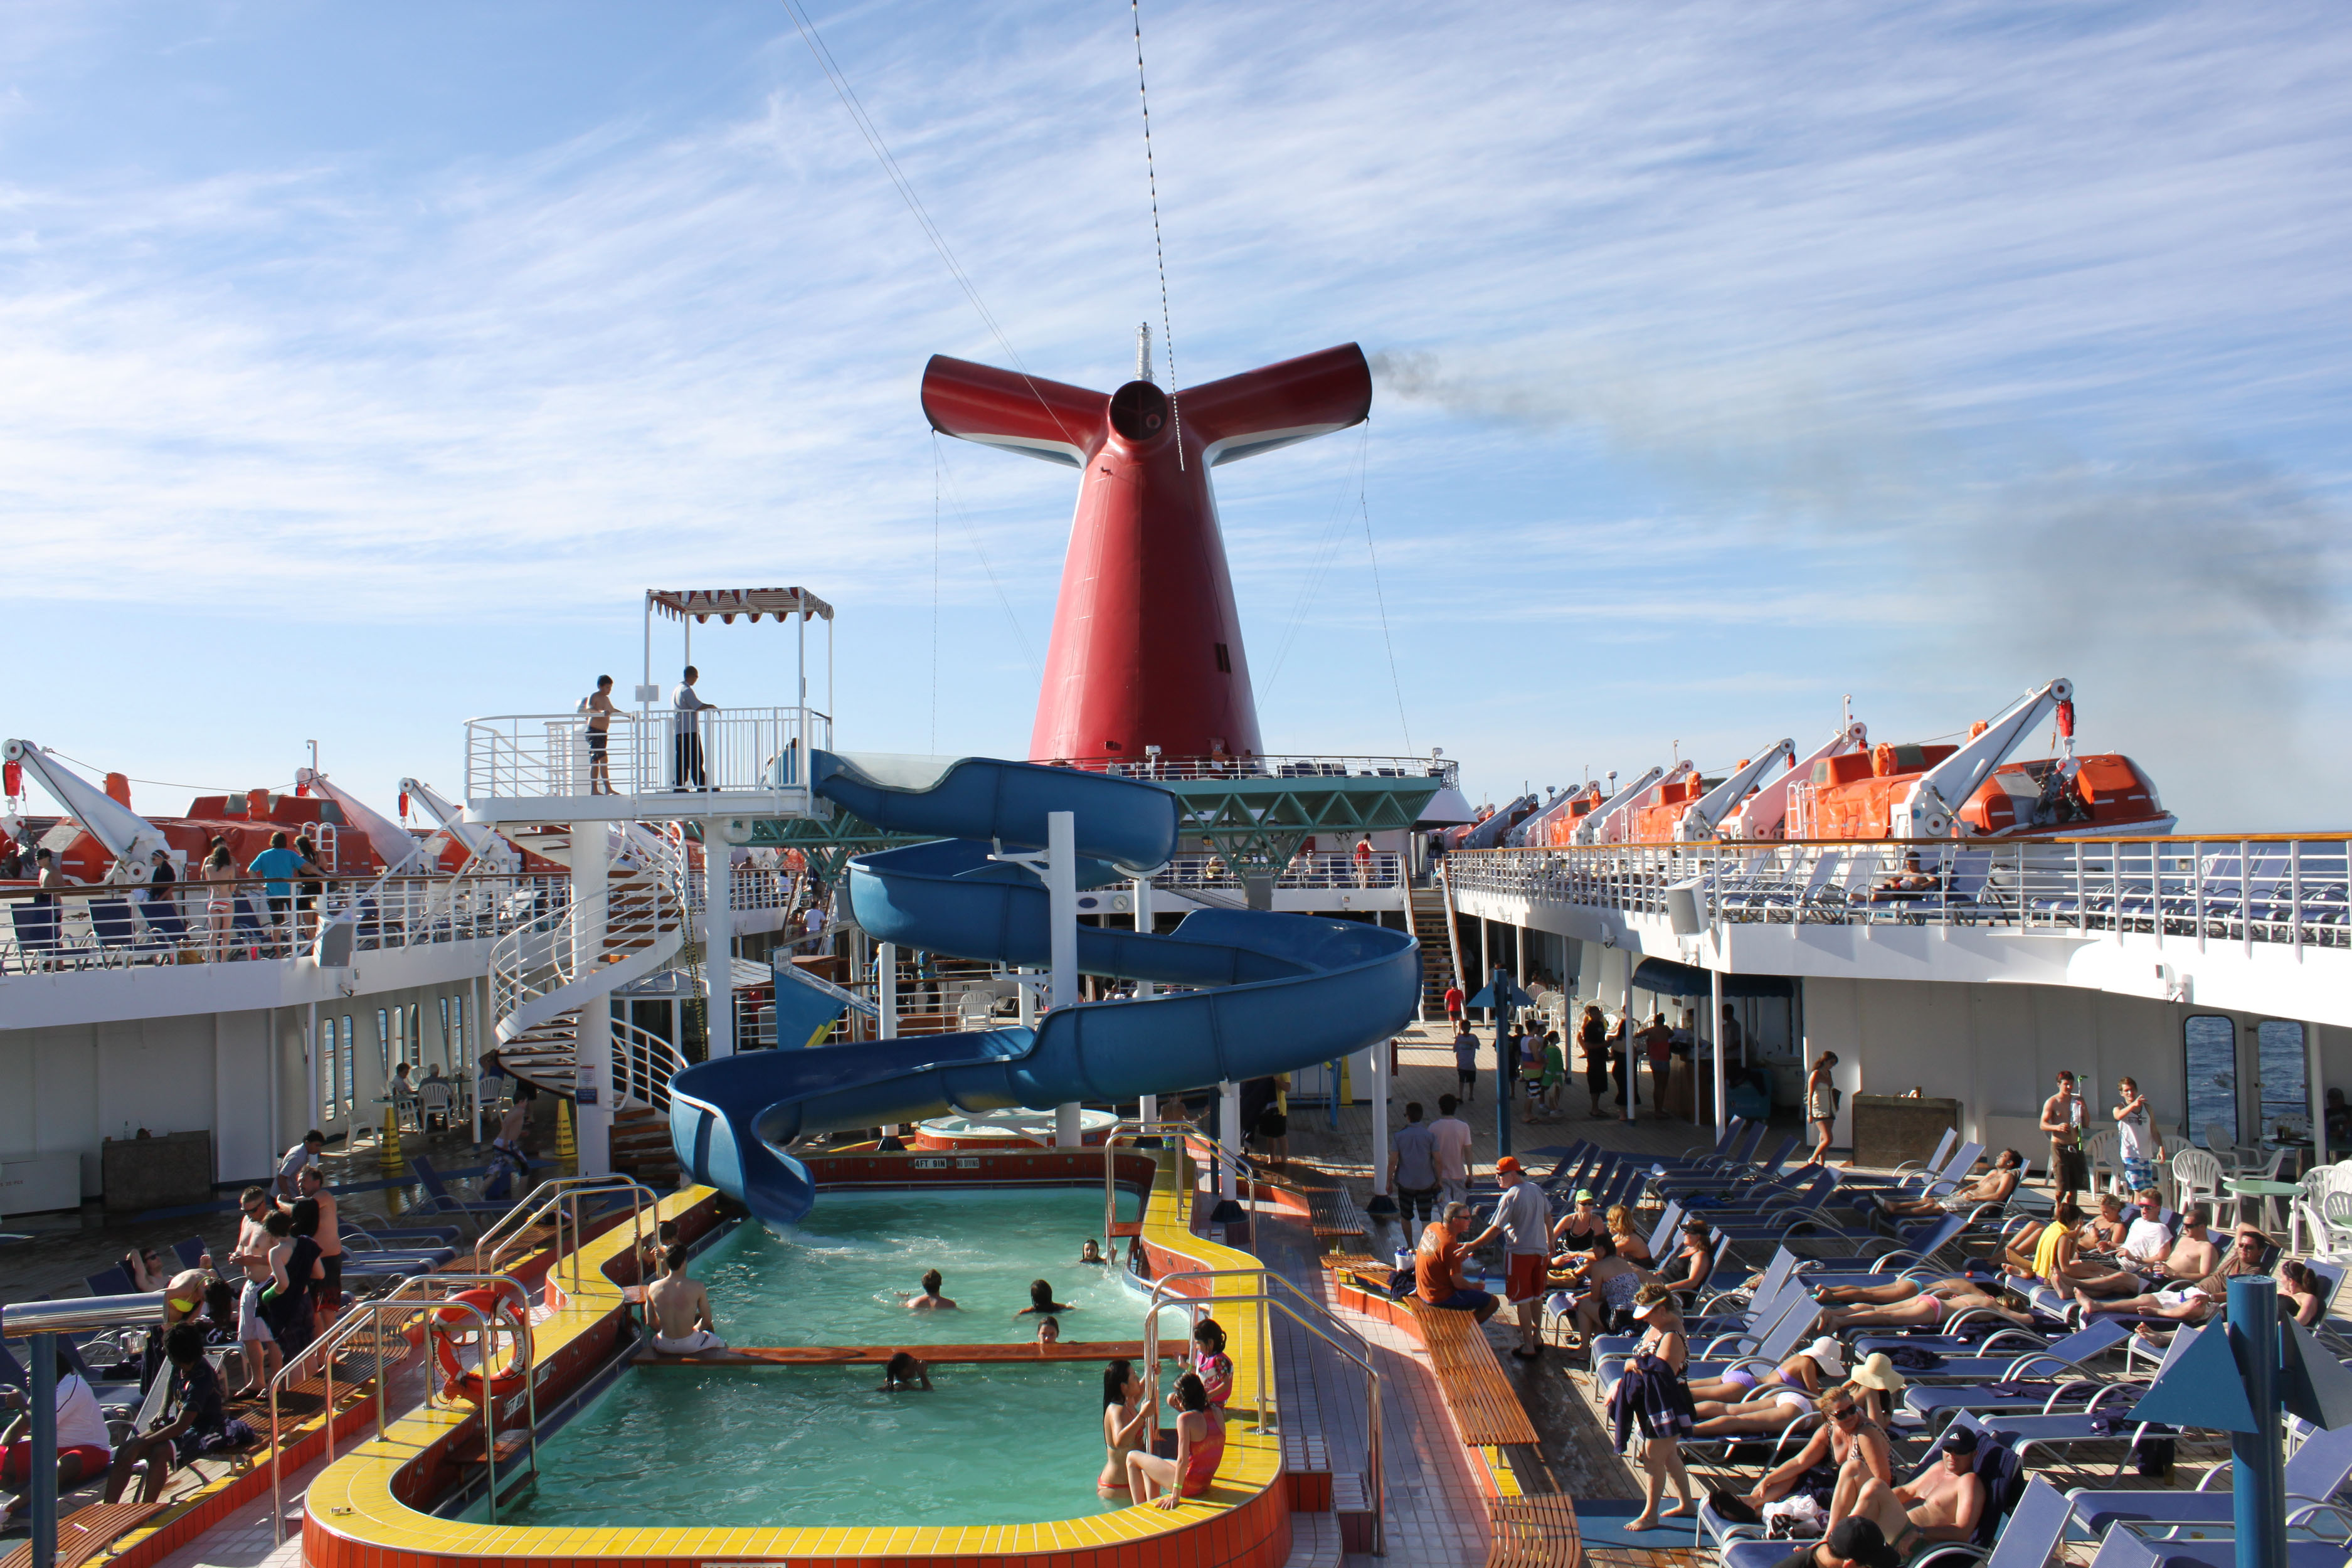 To Cruise, or Not to Cruise: That is the Question